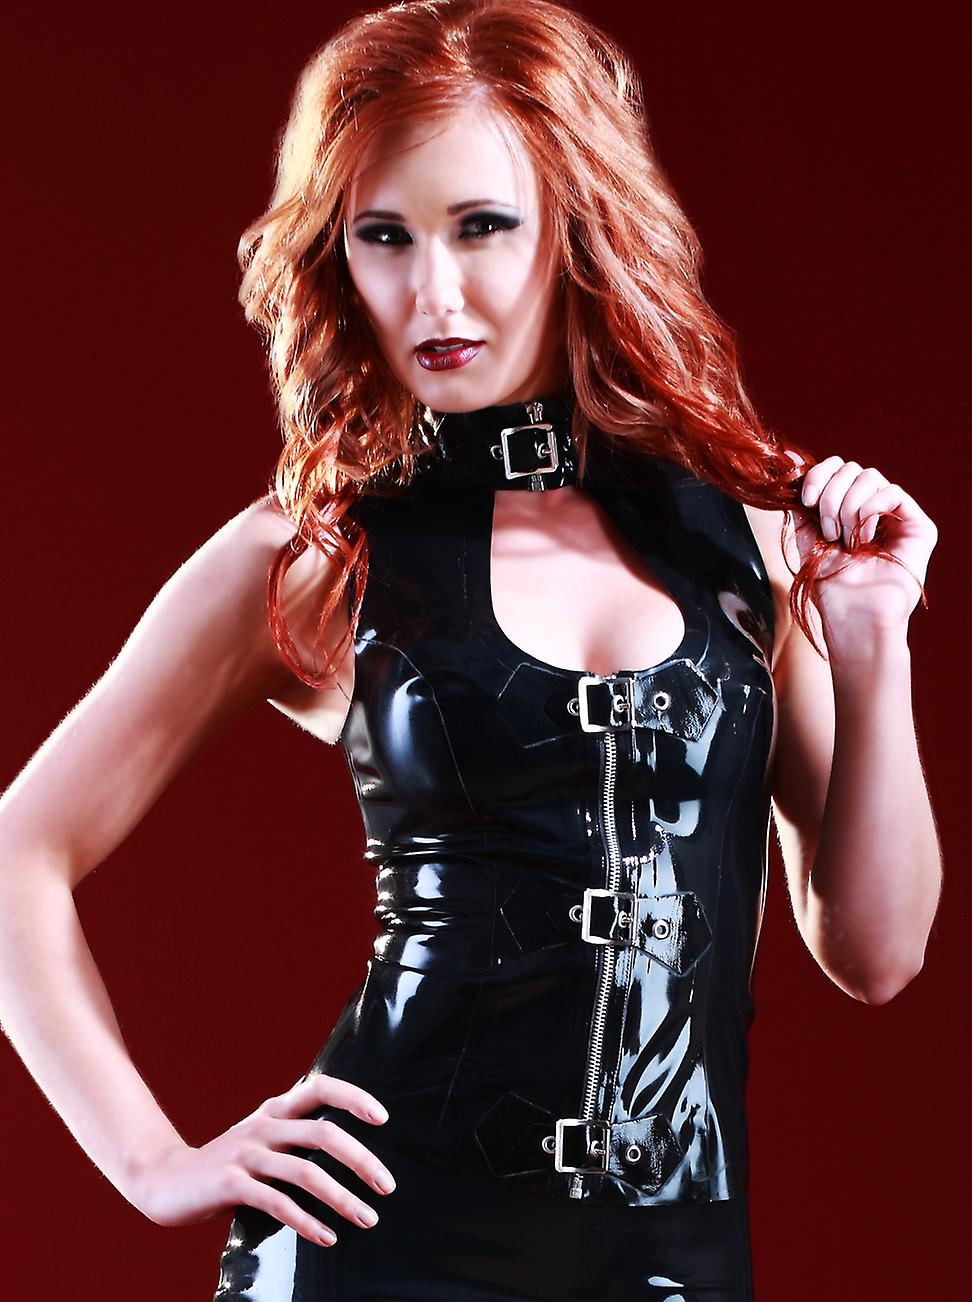 Skin Two Clothing Women's Keyhole Top Sleeveless in Latex Rubber Black